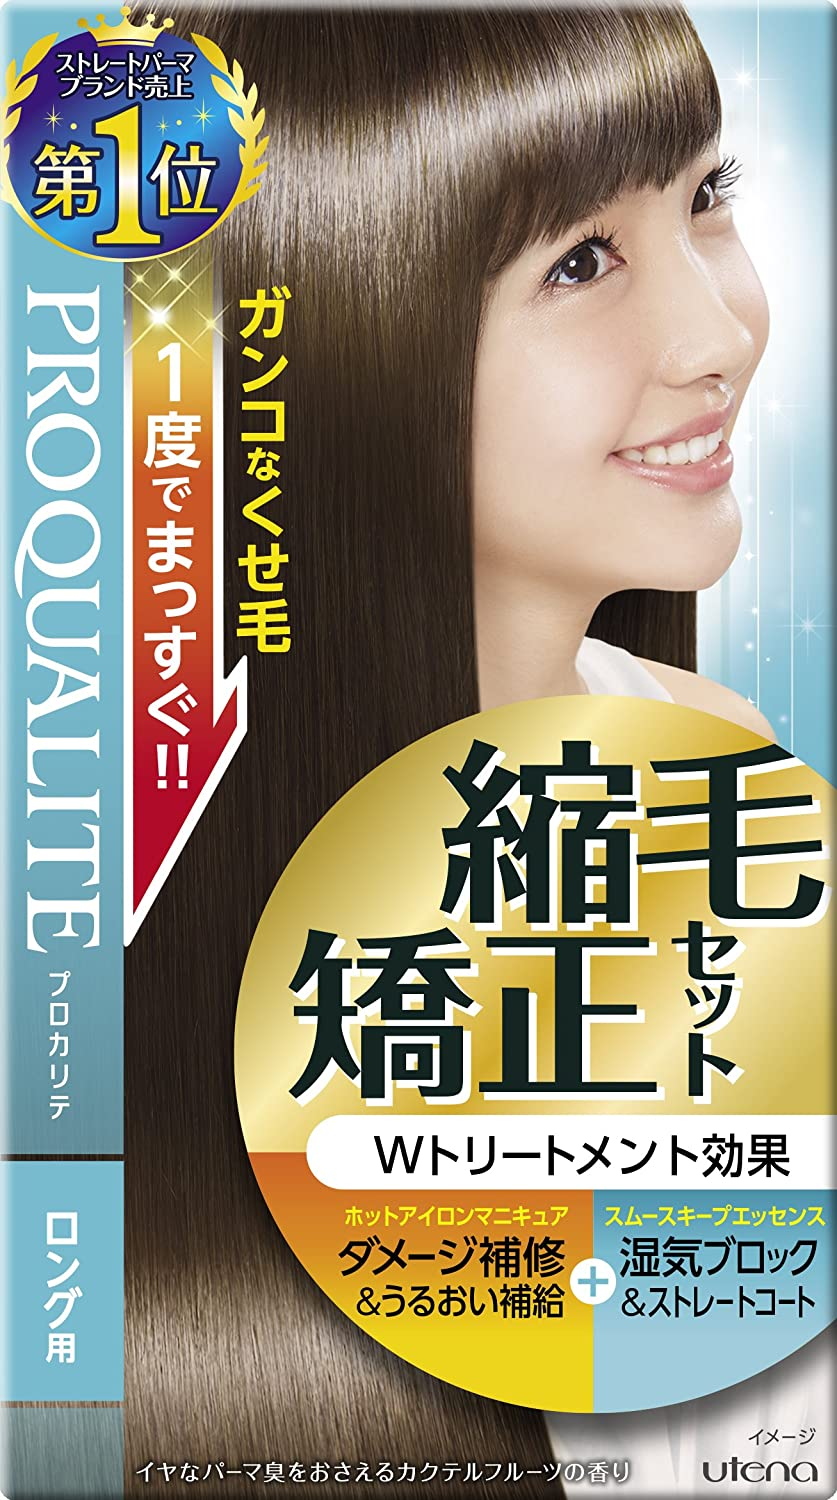 Utena Proqualite Ex Long Straight Perm Kit From Japan by PROQUALITE